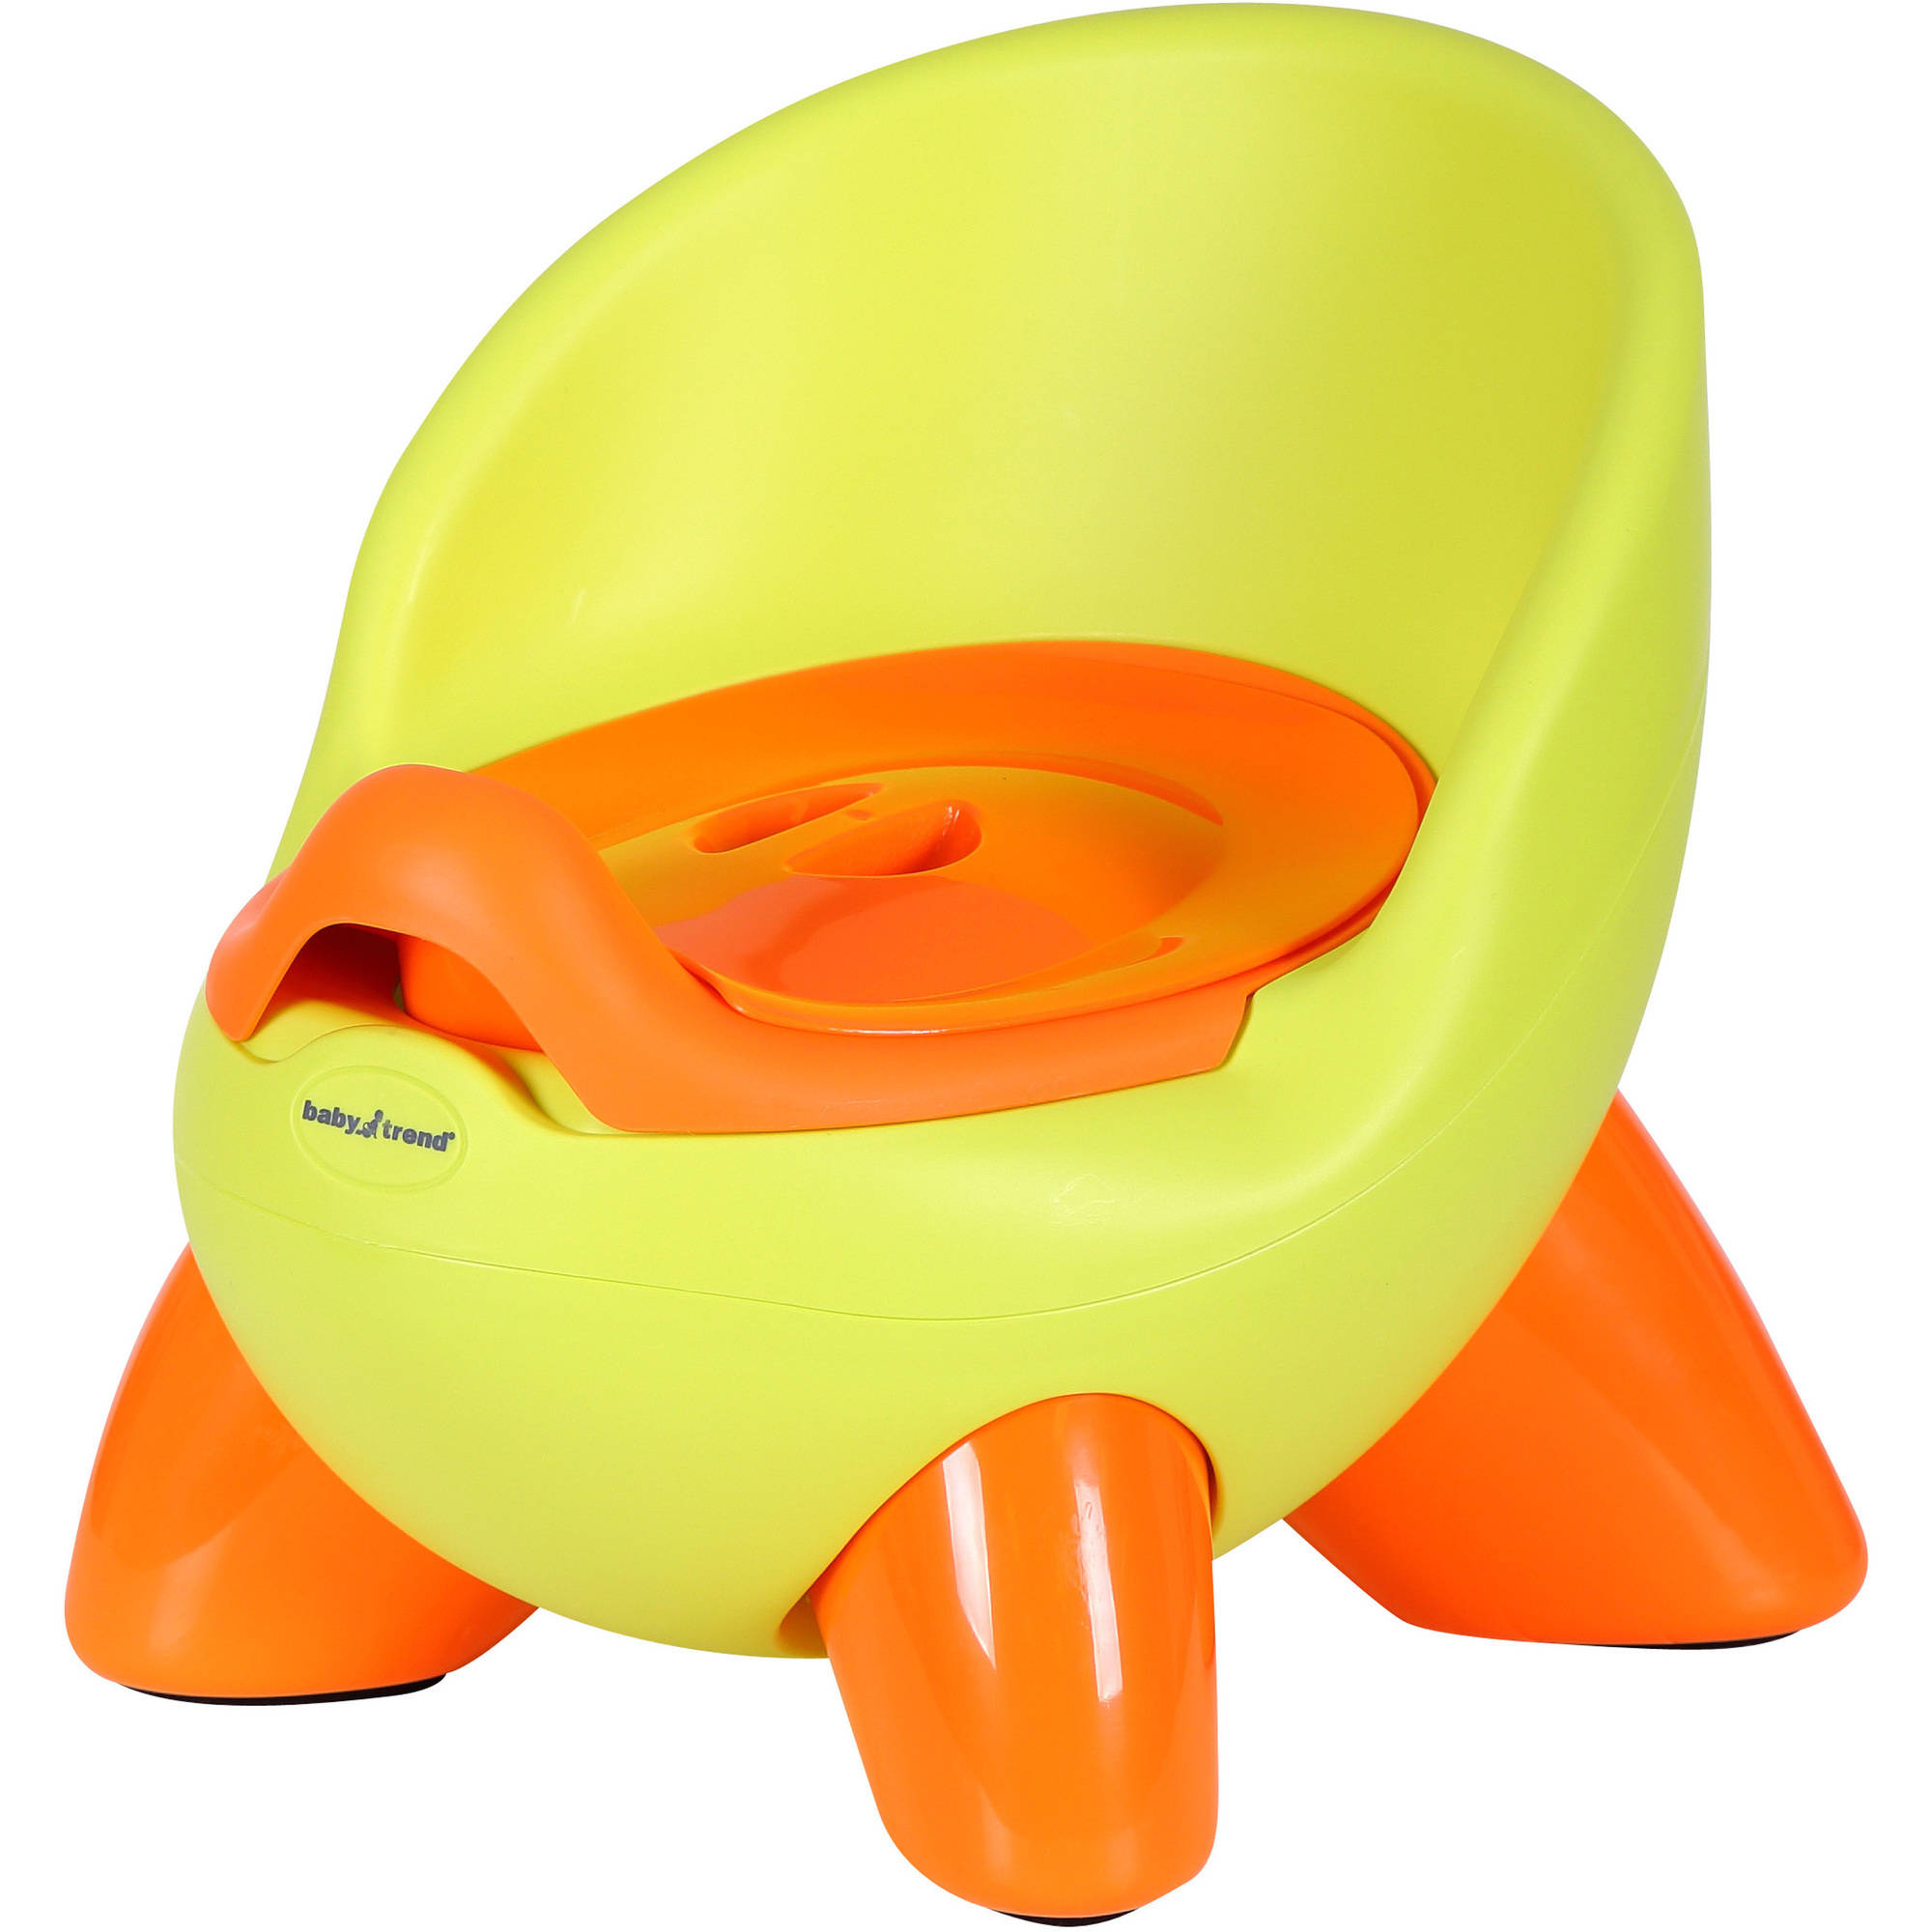 potty chair large child antique ladder back chairs with rush seats baby trend mod walmart com